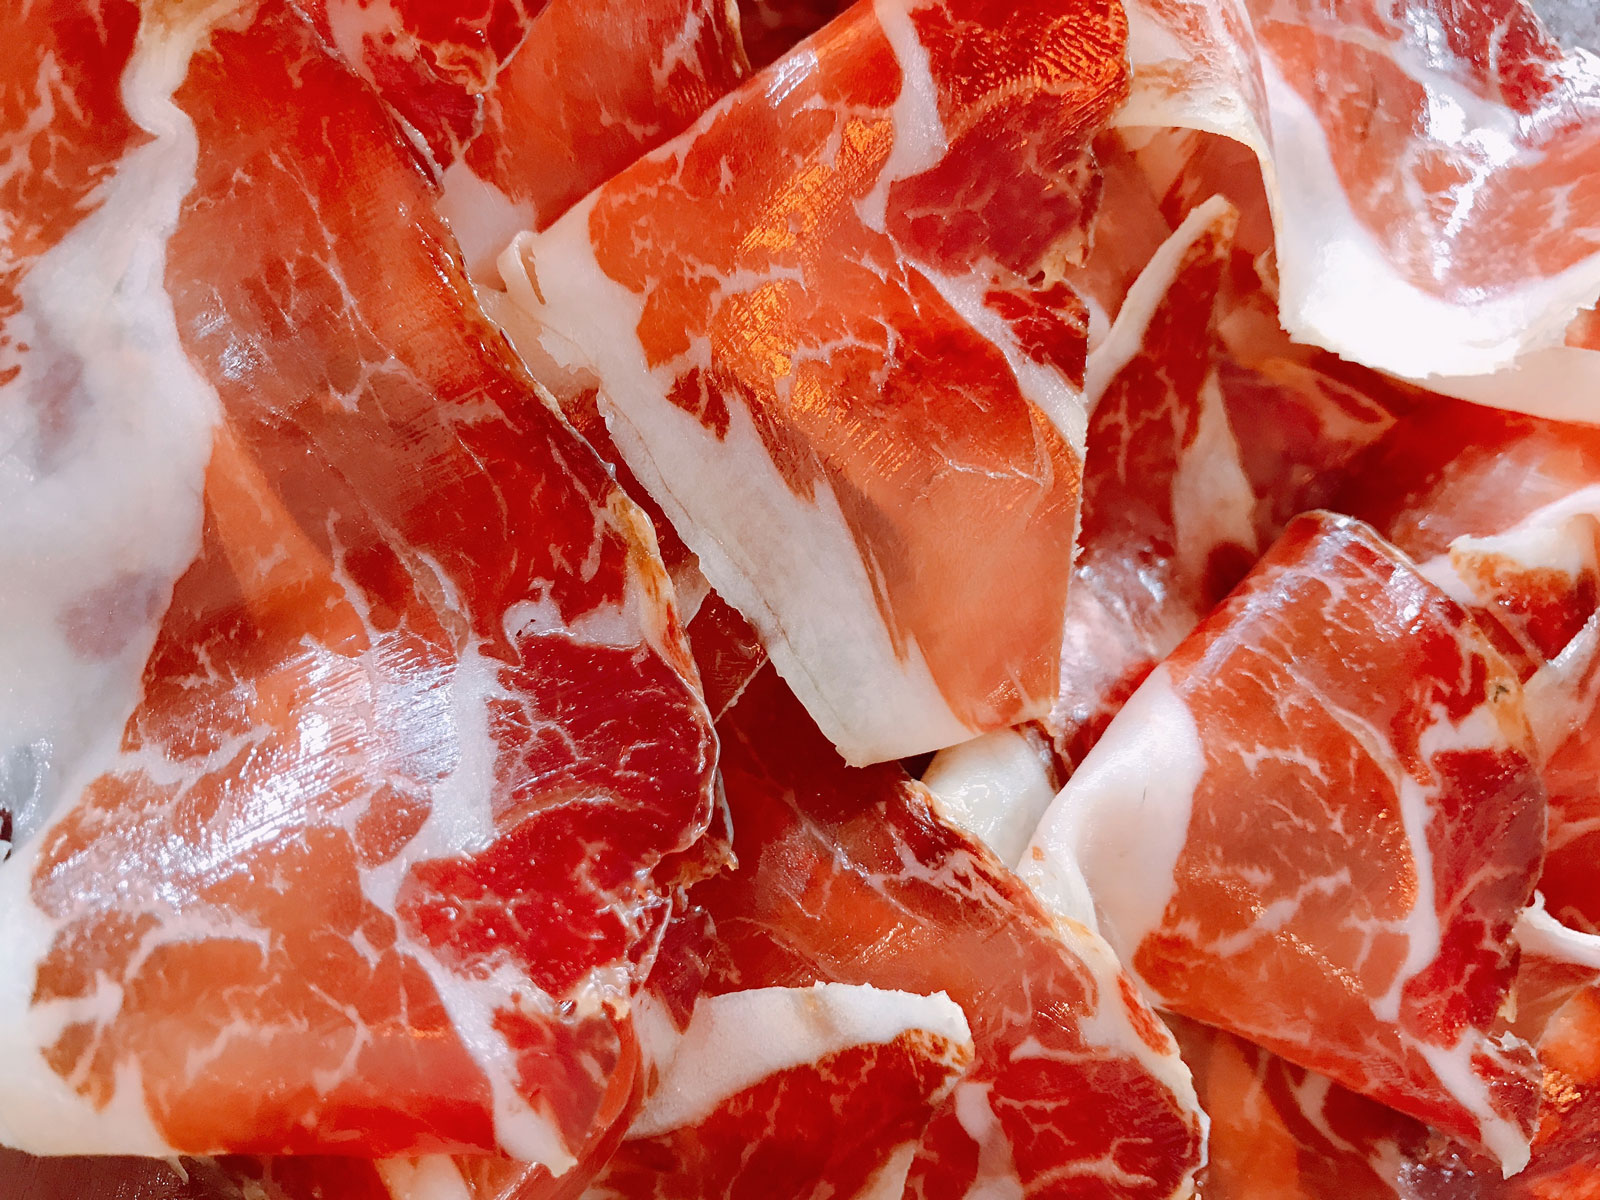 How to Properly Taste Jamón, According to José Andrés and Ferran Adrià